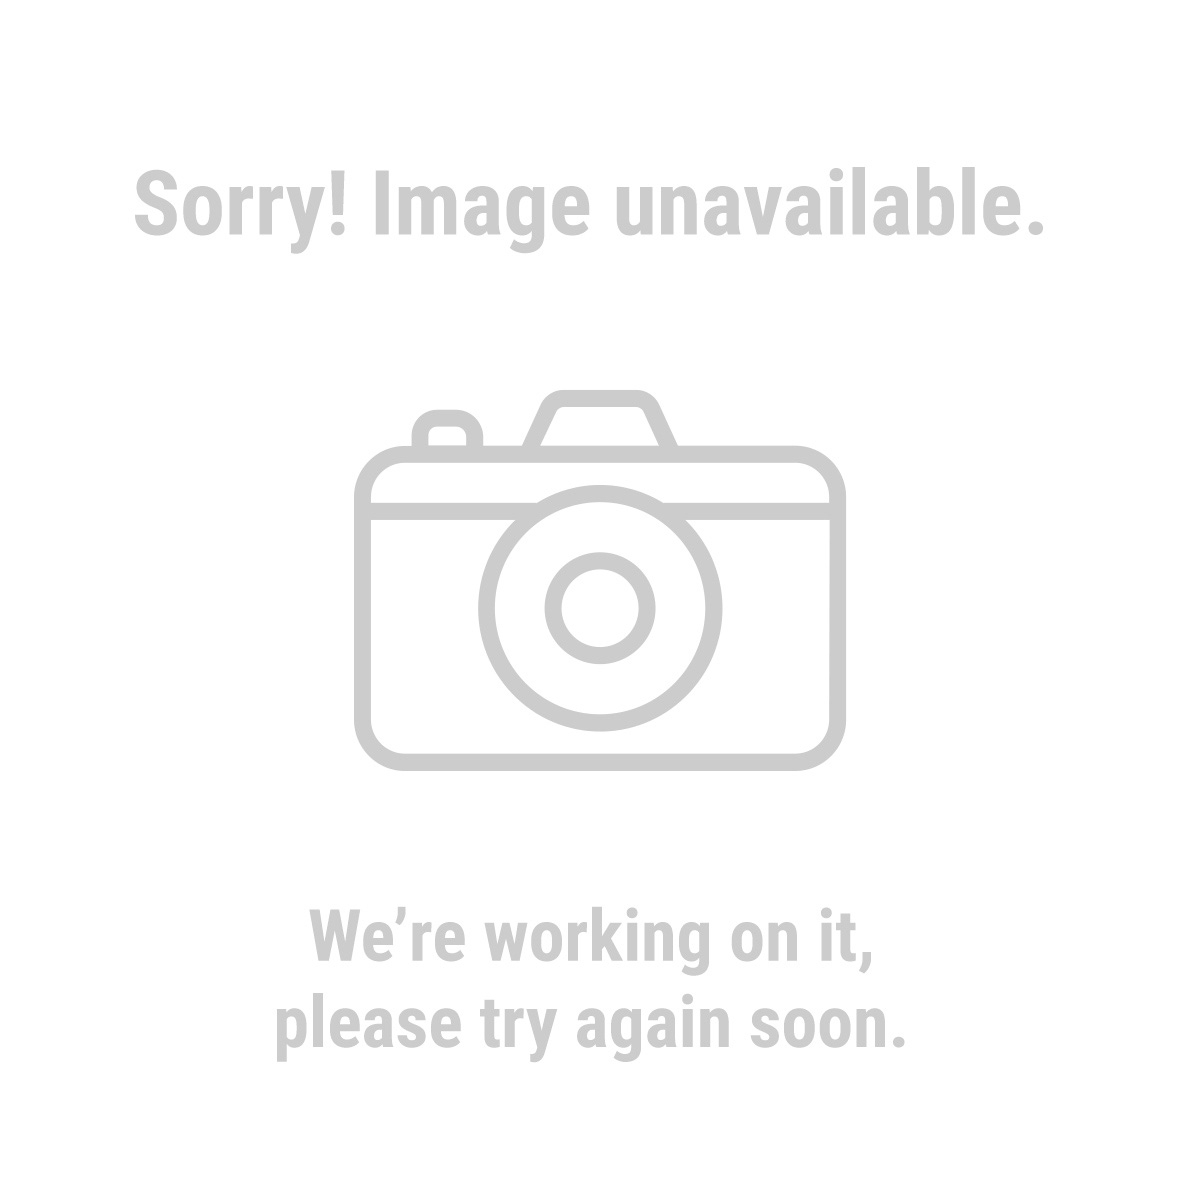 Warrior 96275 2 Piece Titanium Nitride Coated High Speed Steel Step Drills